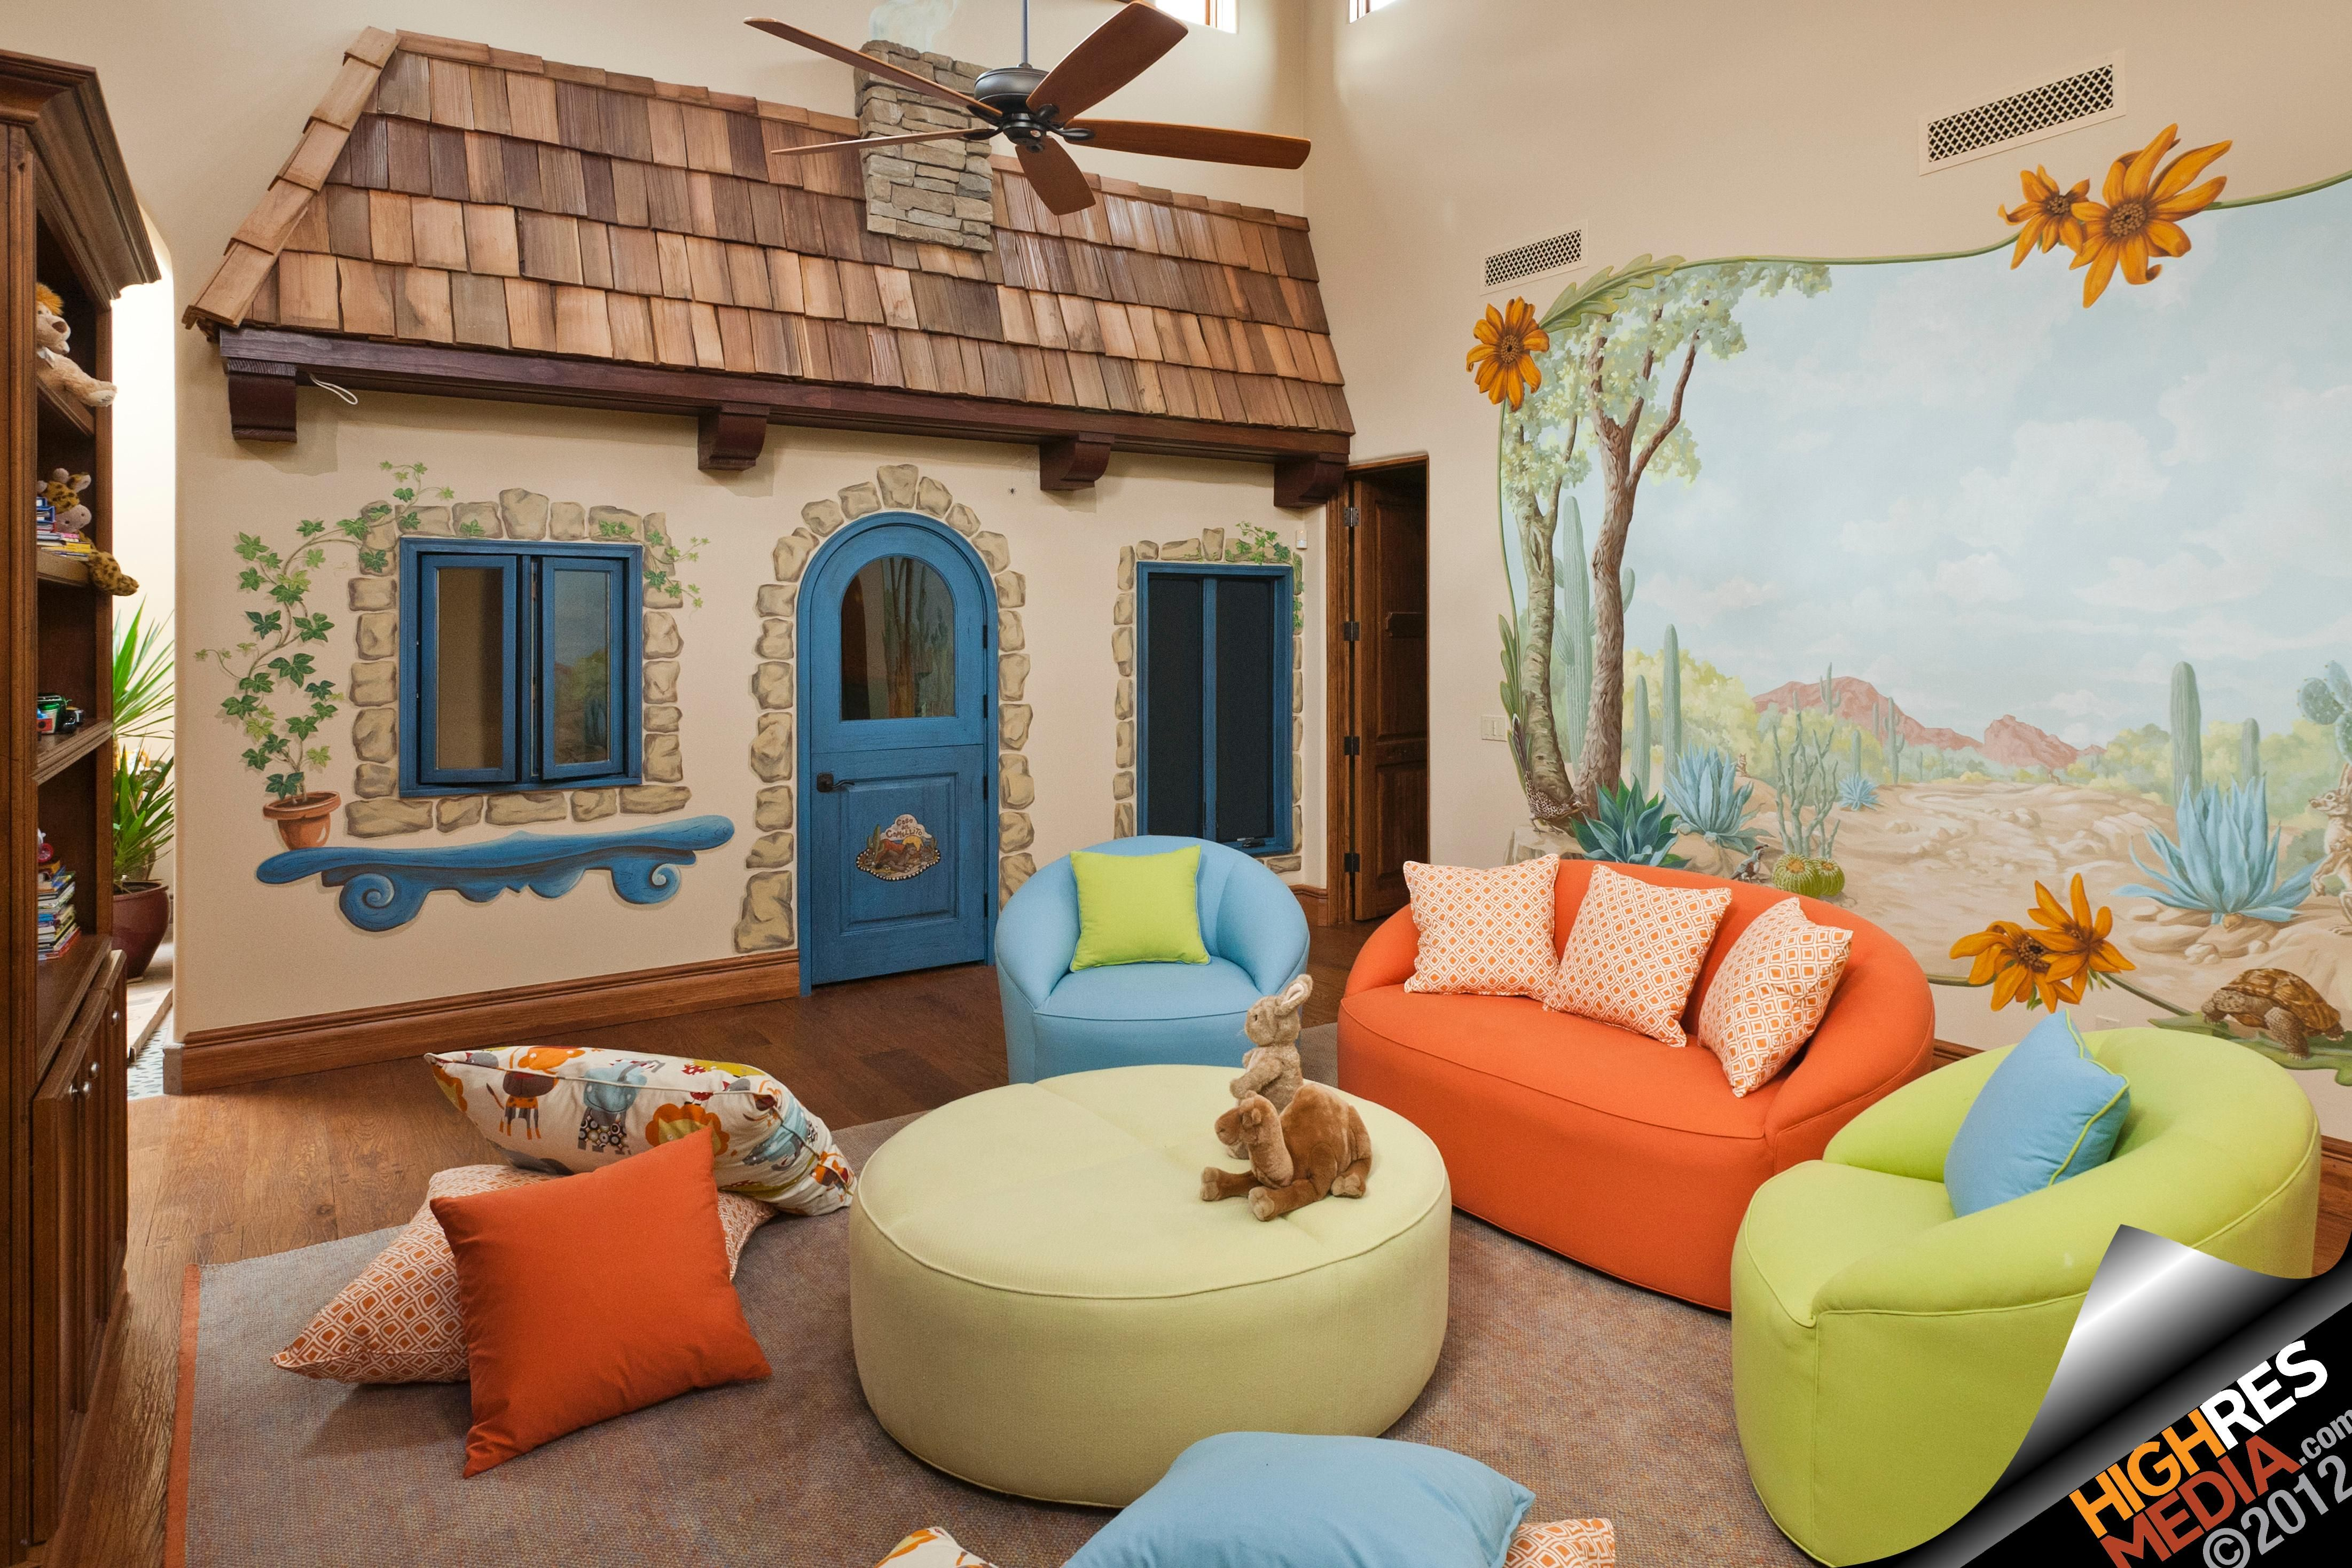 Awesome Playroom With Colorful Couches Photo Taken In Scottsdale